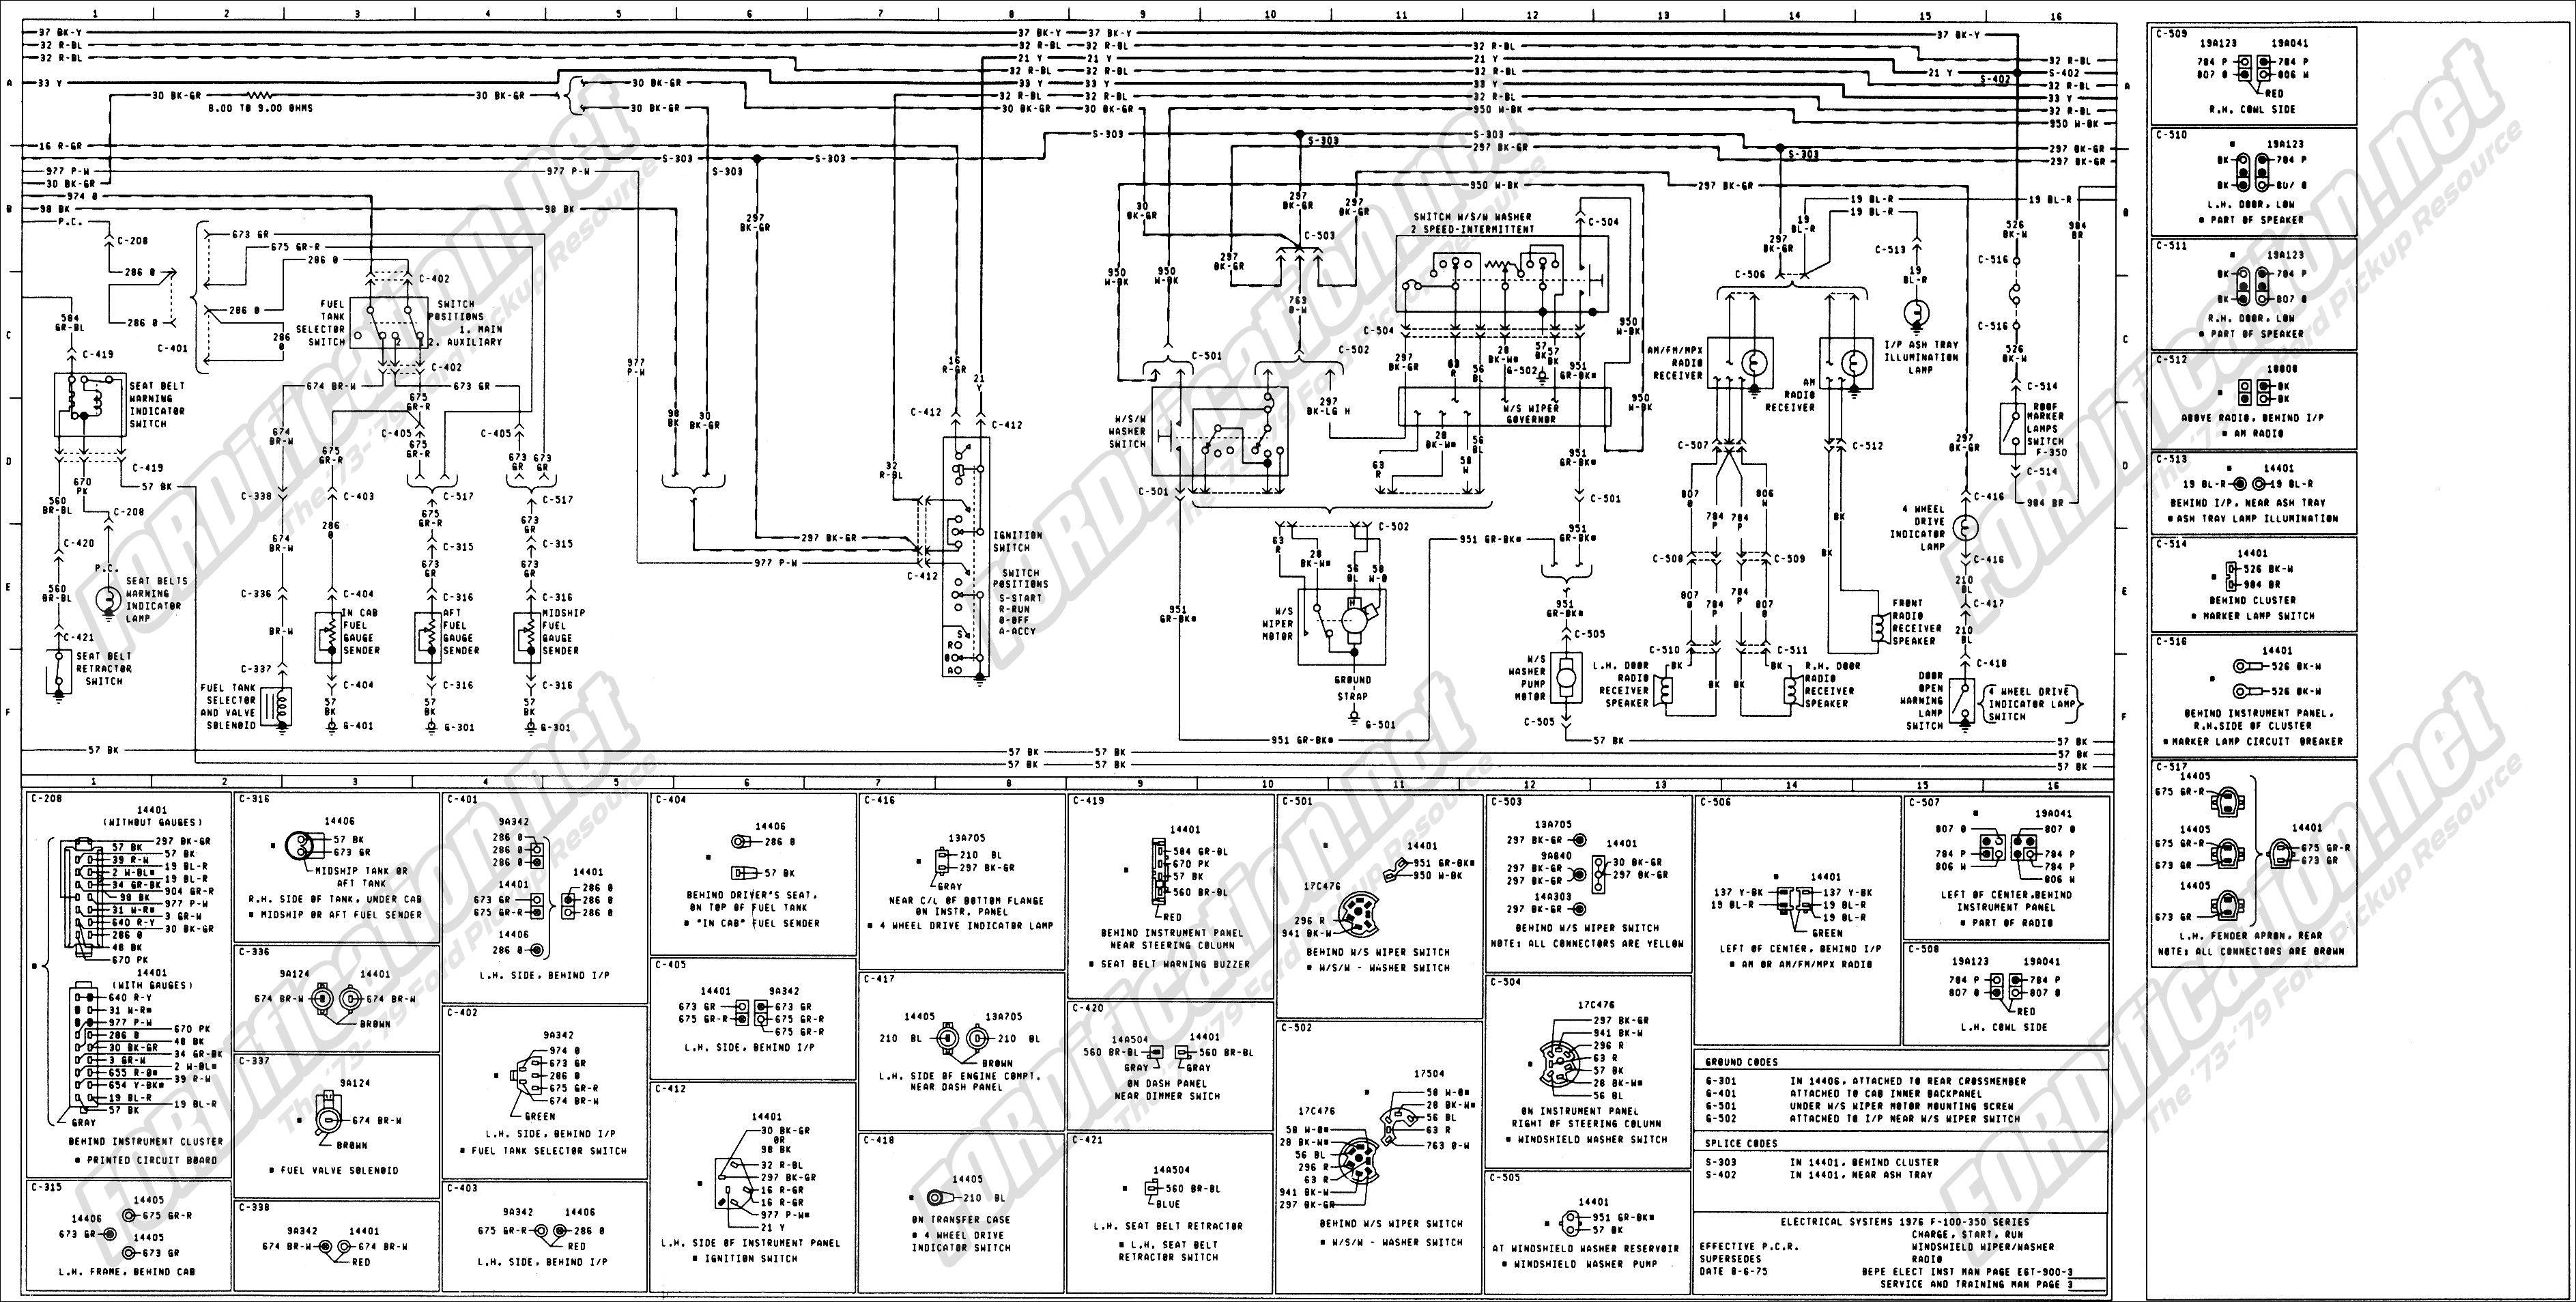 2012 ford f250 upfitter wiring diagram 1973 1979 ford truck wiring diagrams amp schematics 1993 ford f250 radio wiring diagram #9